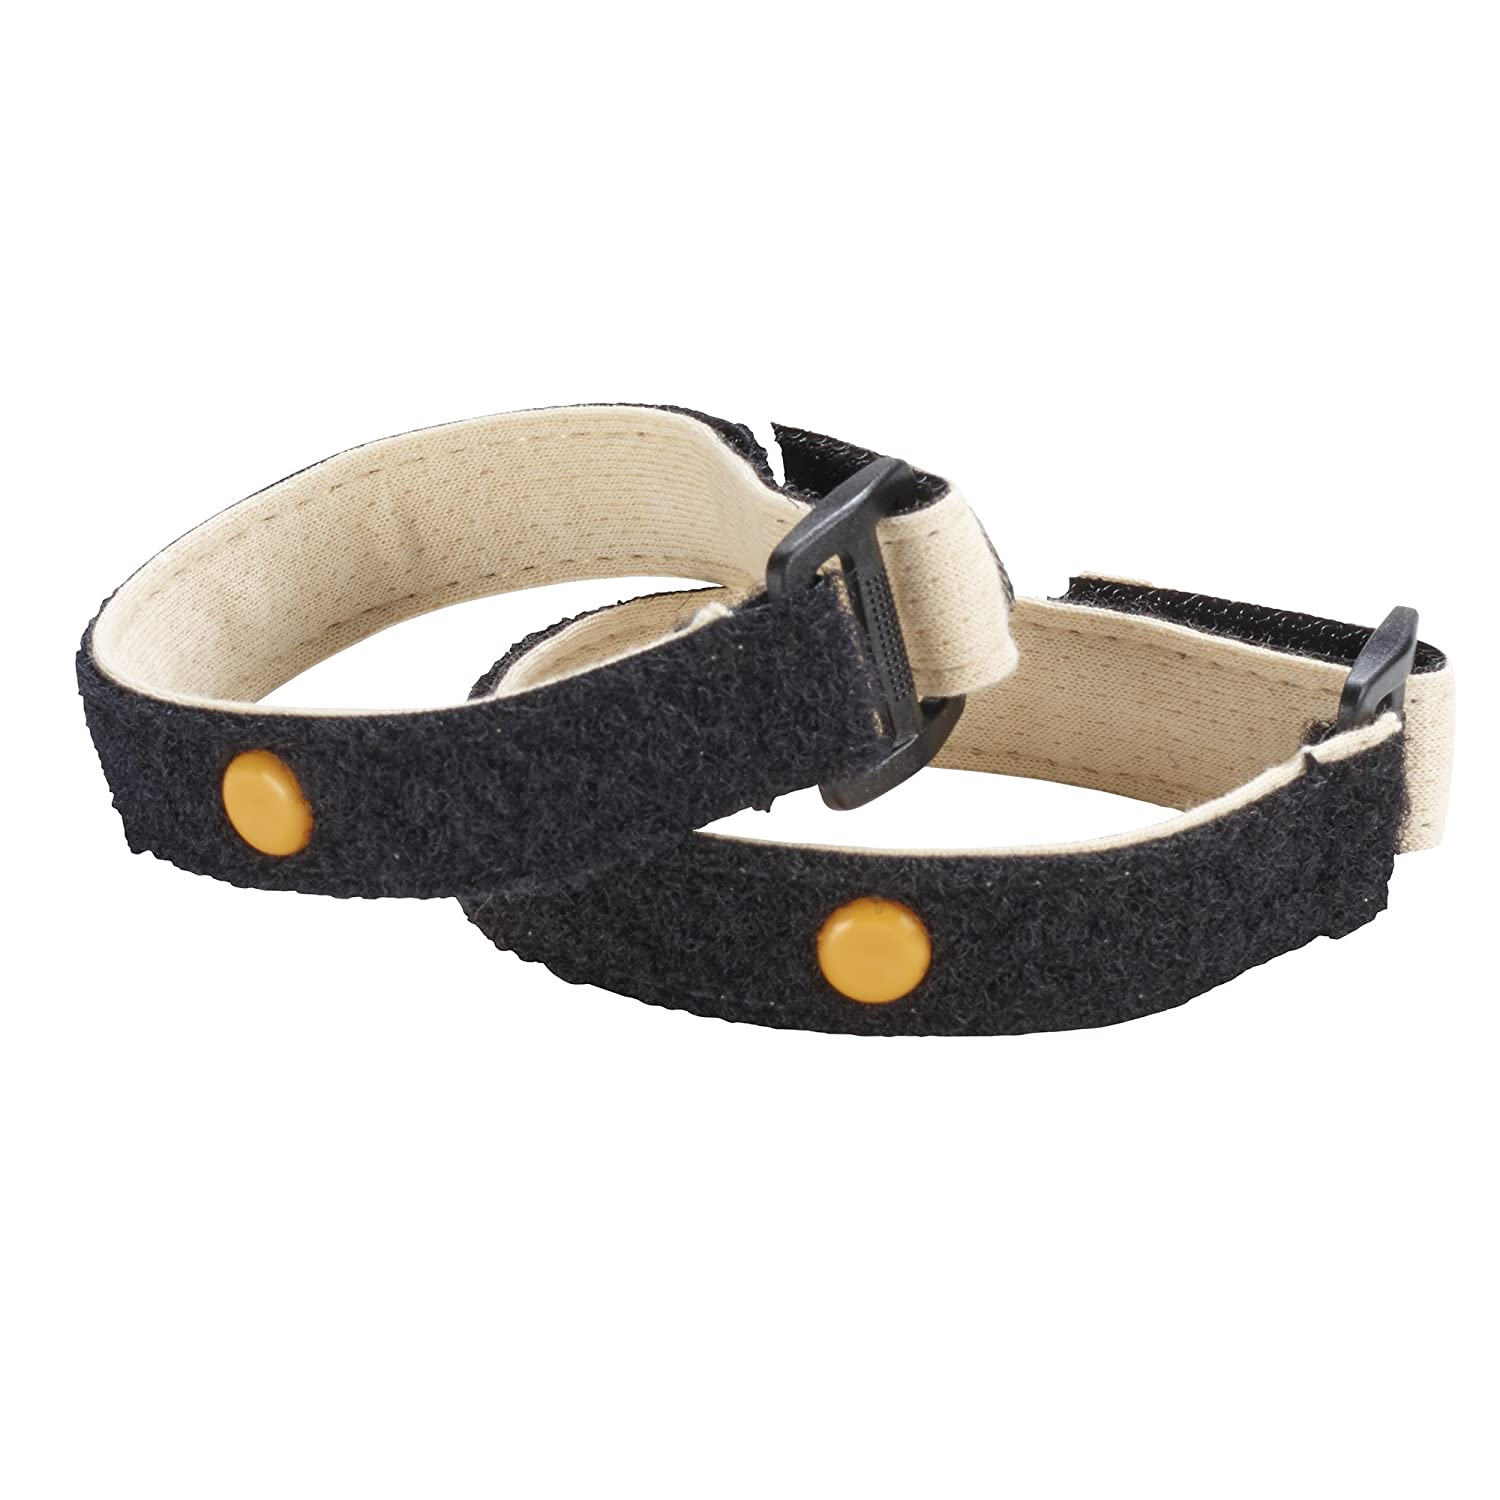 Lewis N. Clark Adjustable Motion Relief Bands, Multi, One Size 767